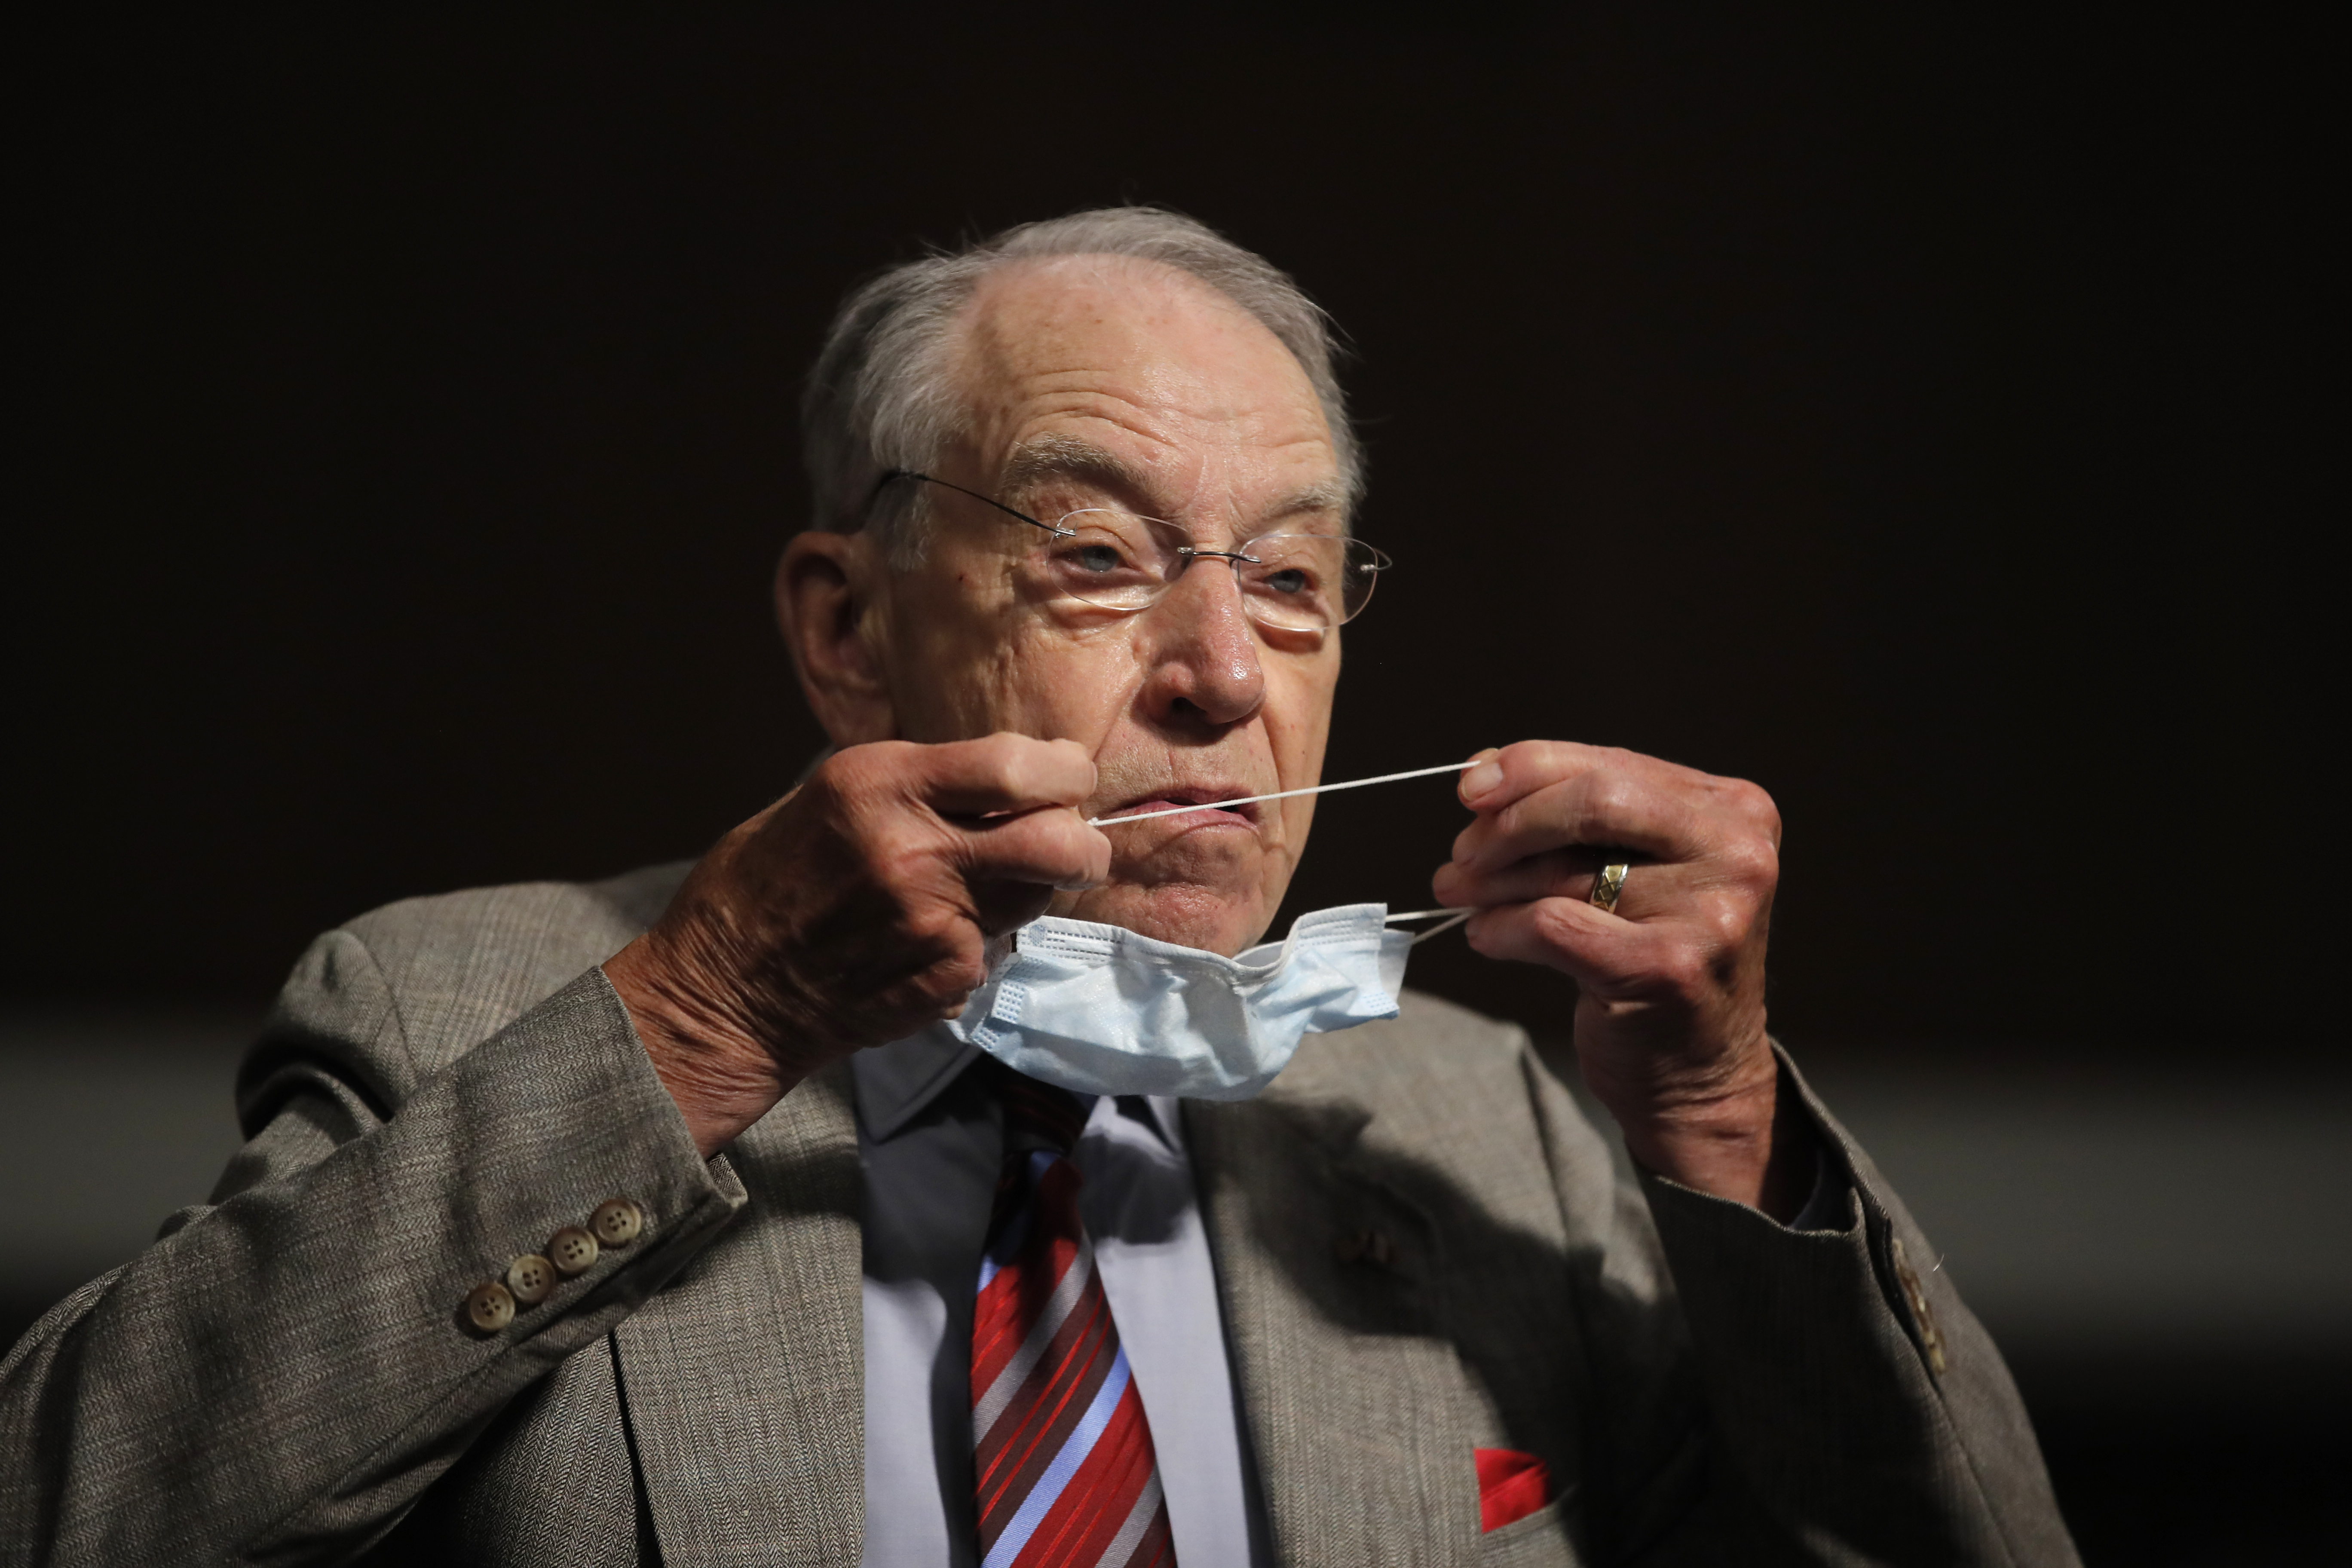 Sen. Chuck Grassley, R-Iowa, puts on a face mask during a Senate Judiciary Committee on Capitol Hill in Washington on June 11, 2020.